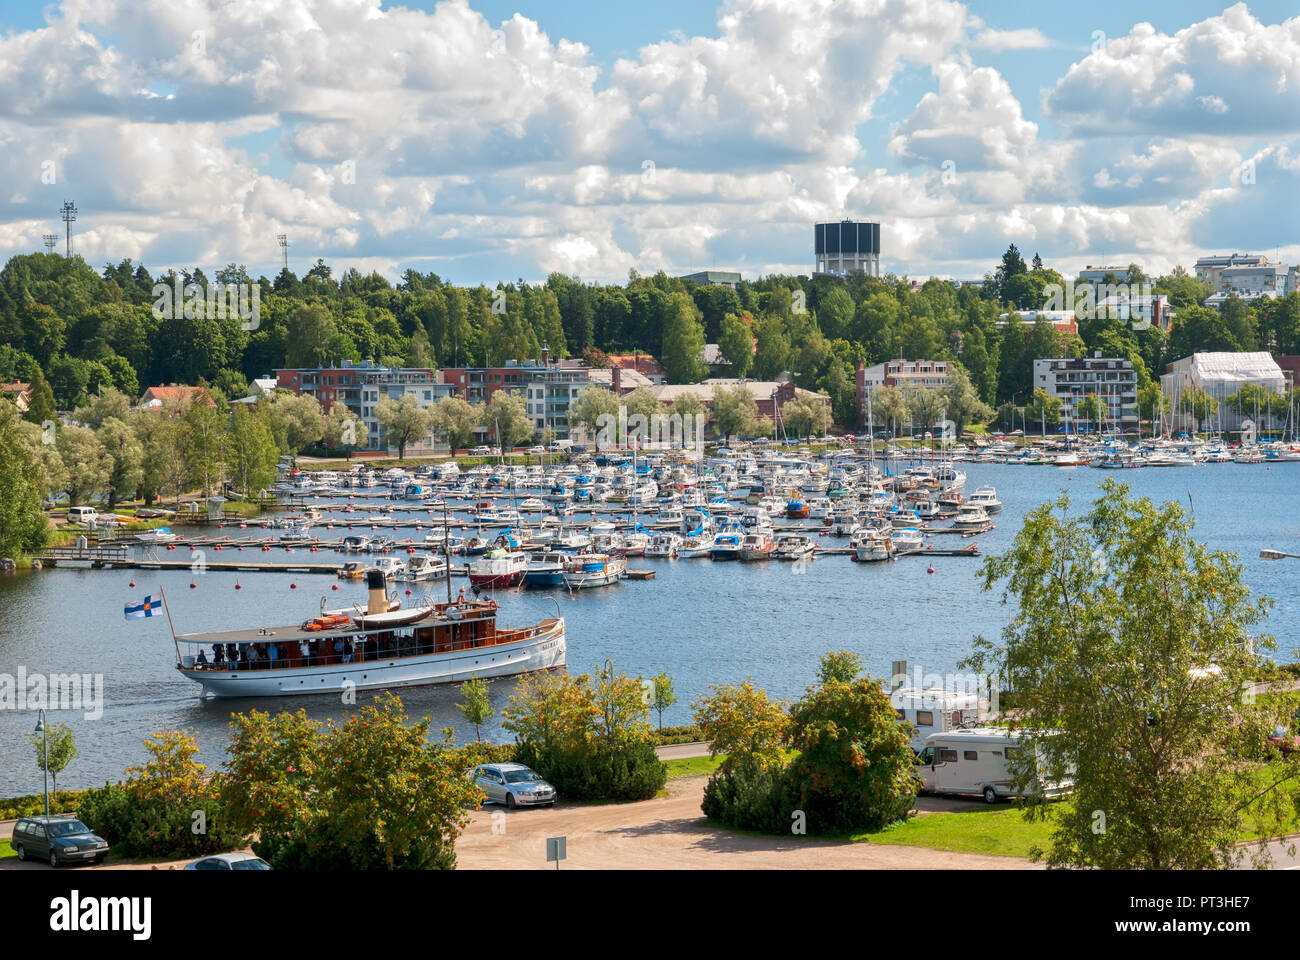 LAPPEENRANTA, FINLAND - AUGUST 8, 2016: People sail on a boat to Lappeenranta Harbor on Saima Lake. View from Linnoitus Fortress Stock Photo